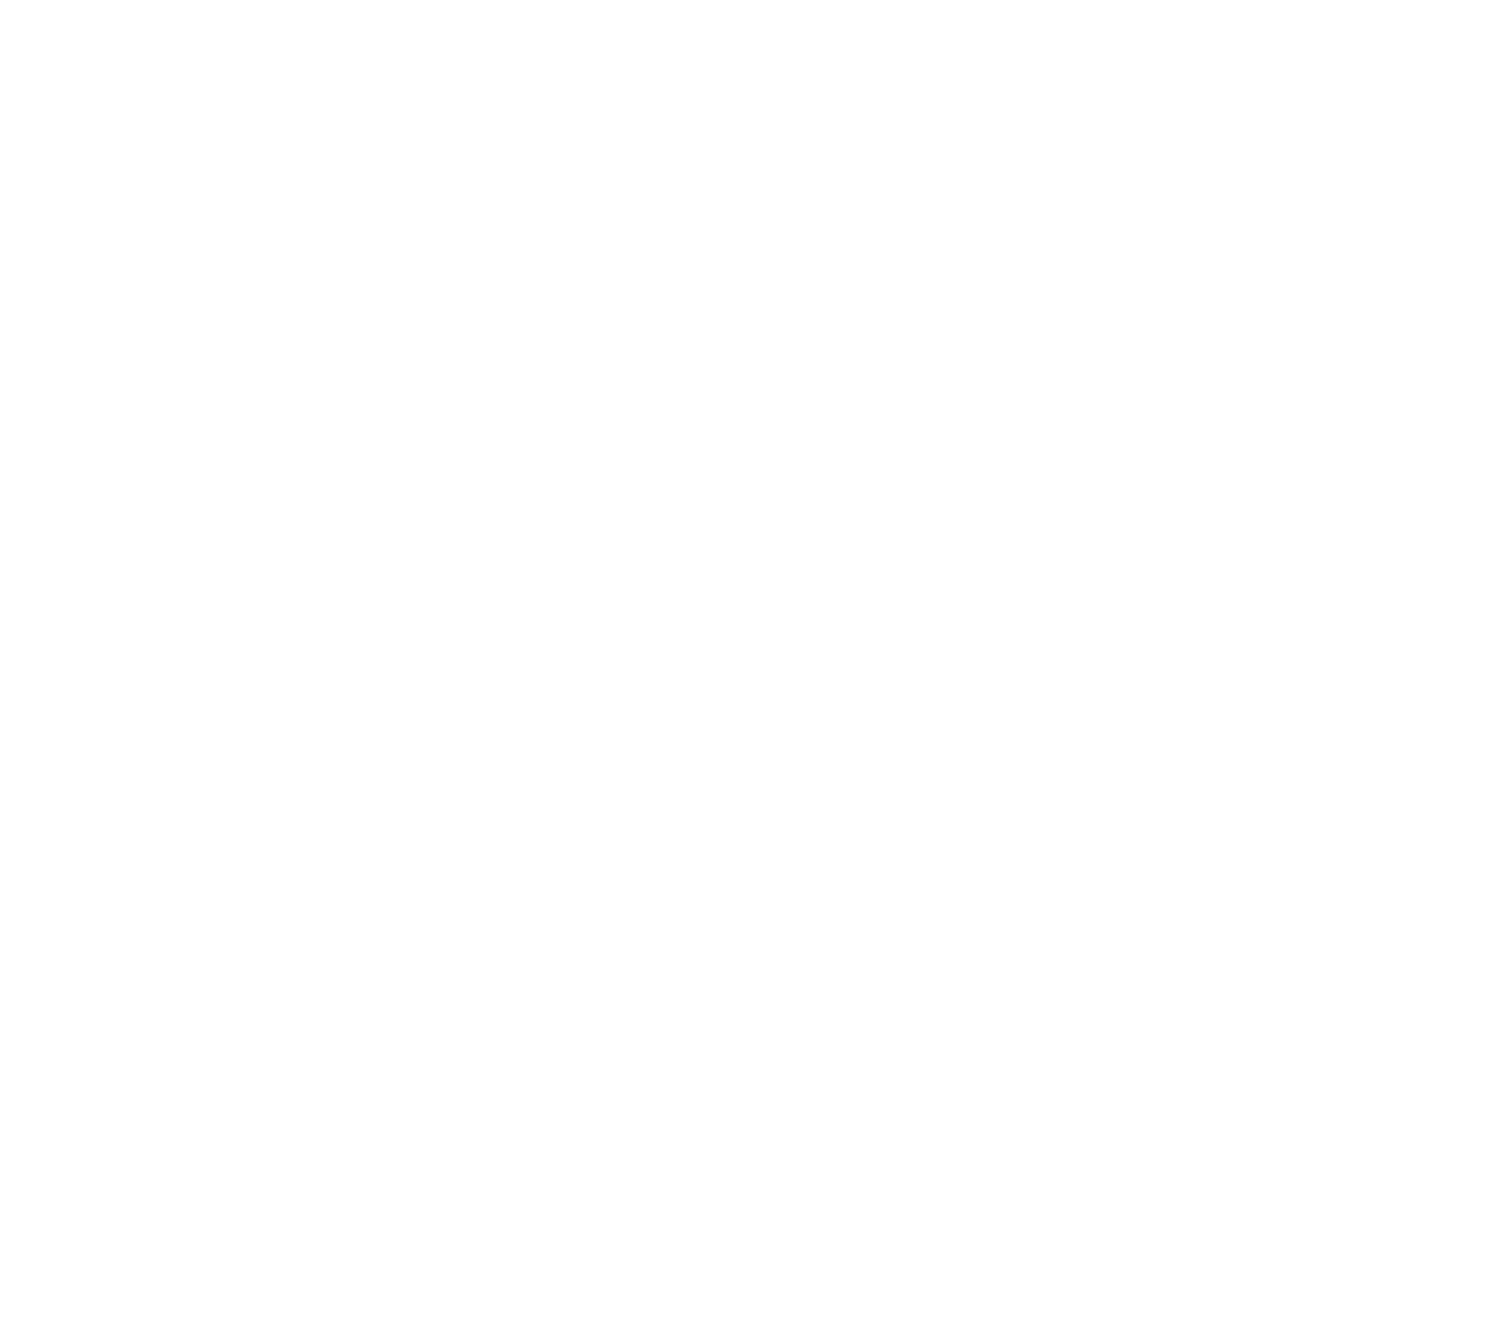 Blossom Street Gallery & Framing